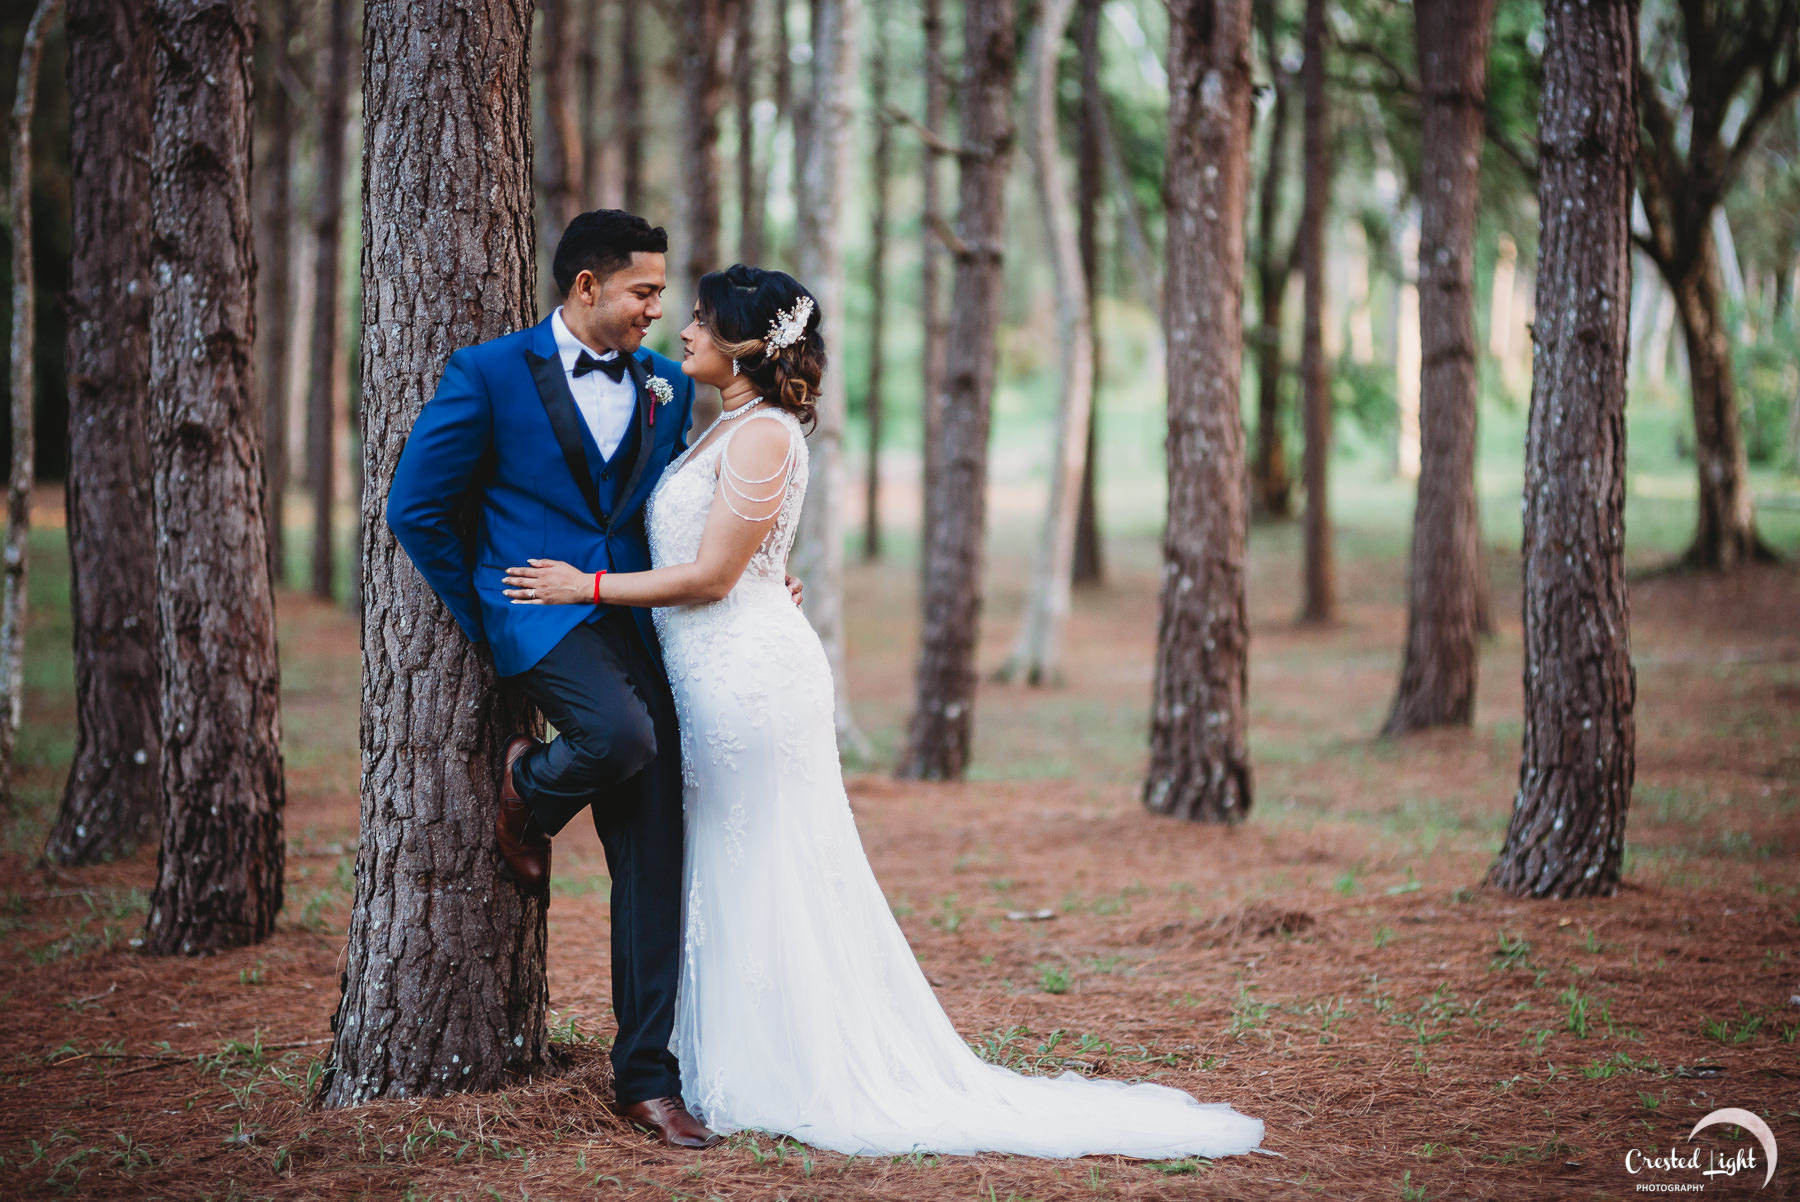 Sandyhill Nature park Trinidad Wedding and Engagement Photography